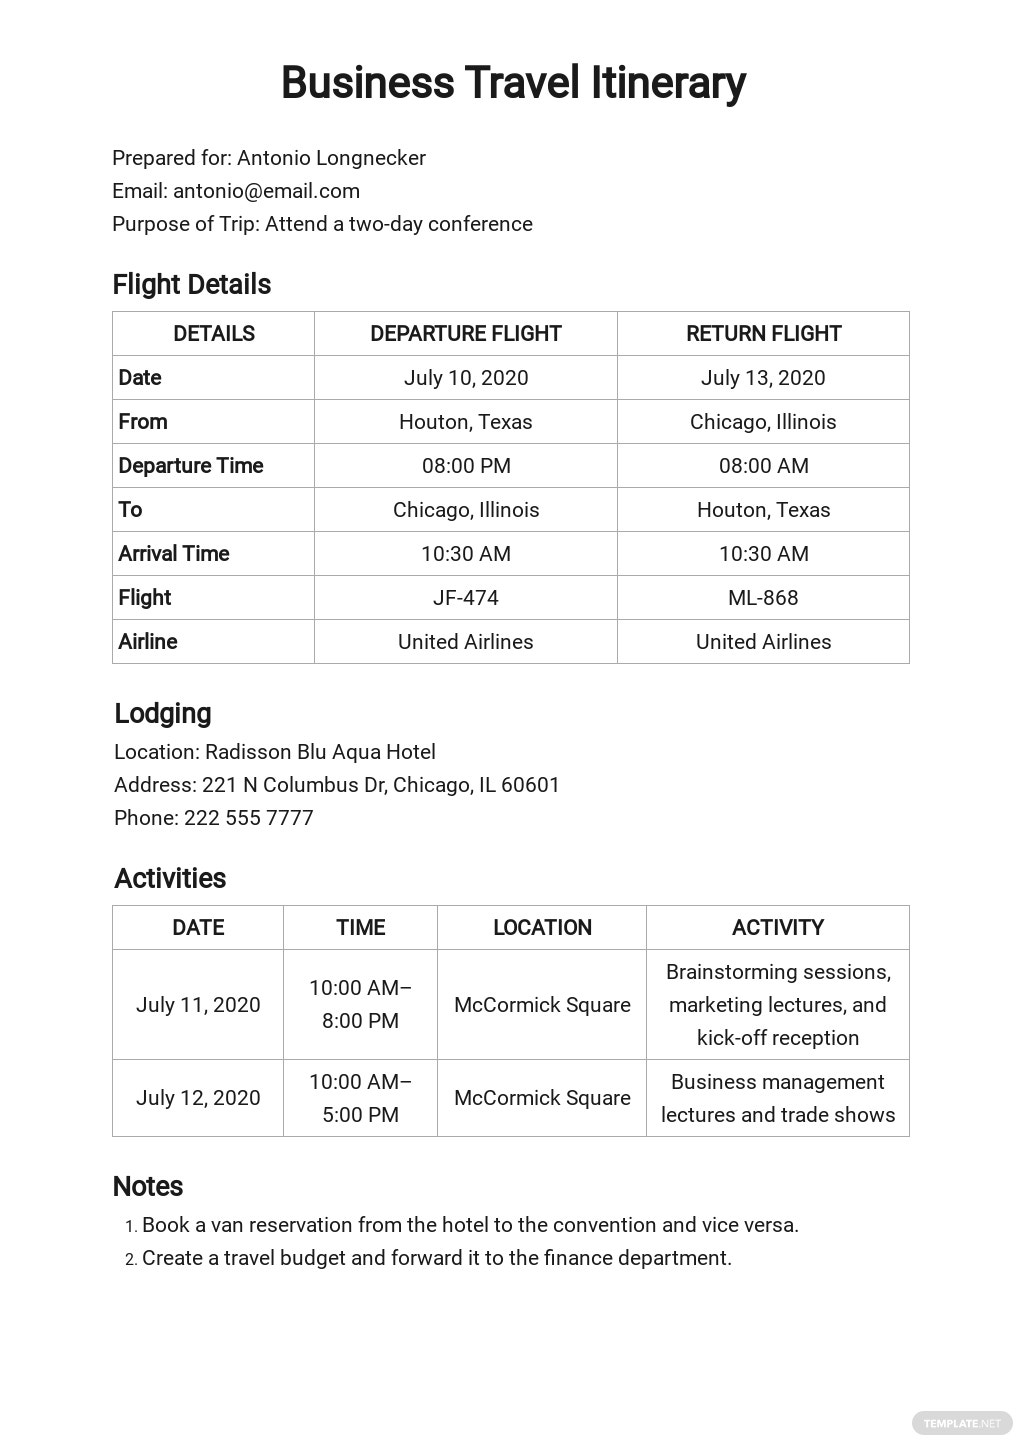 Business Travel Itinerary Format Template